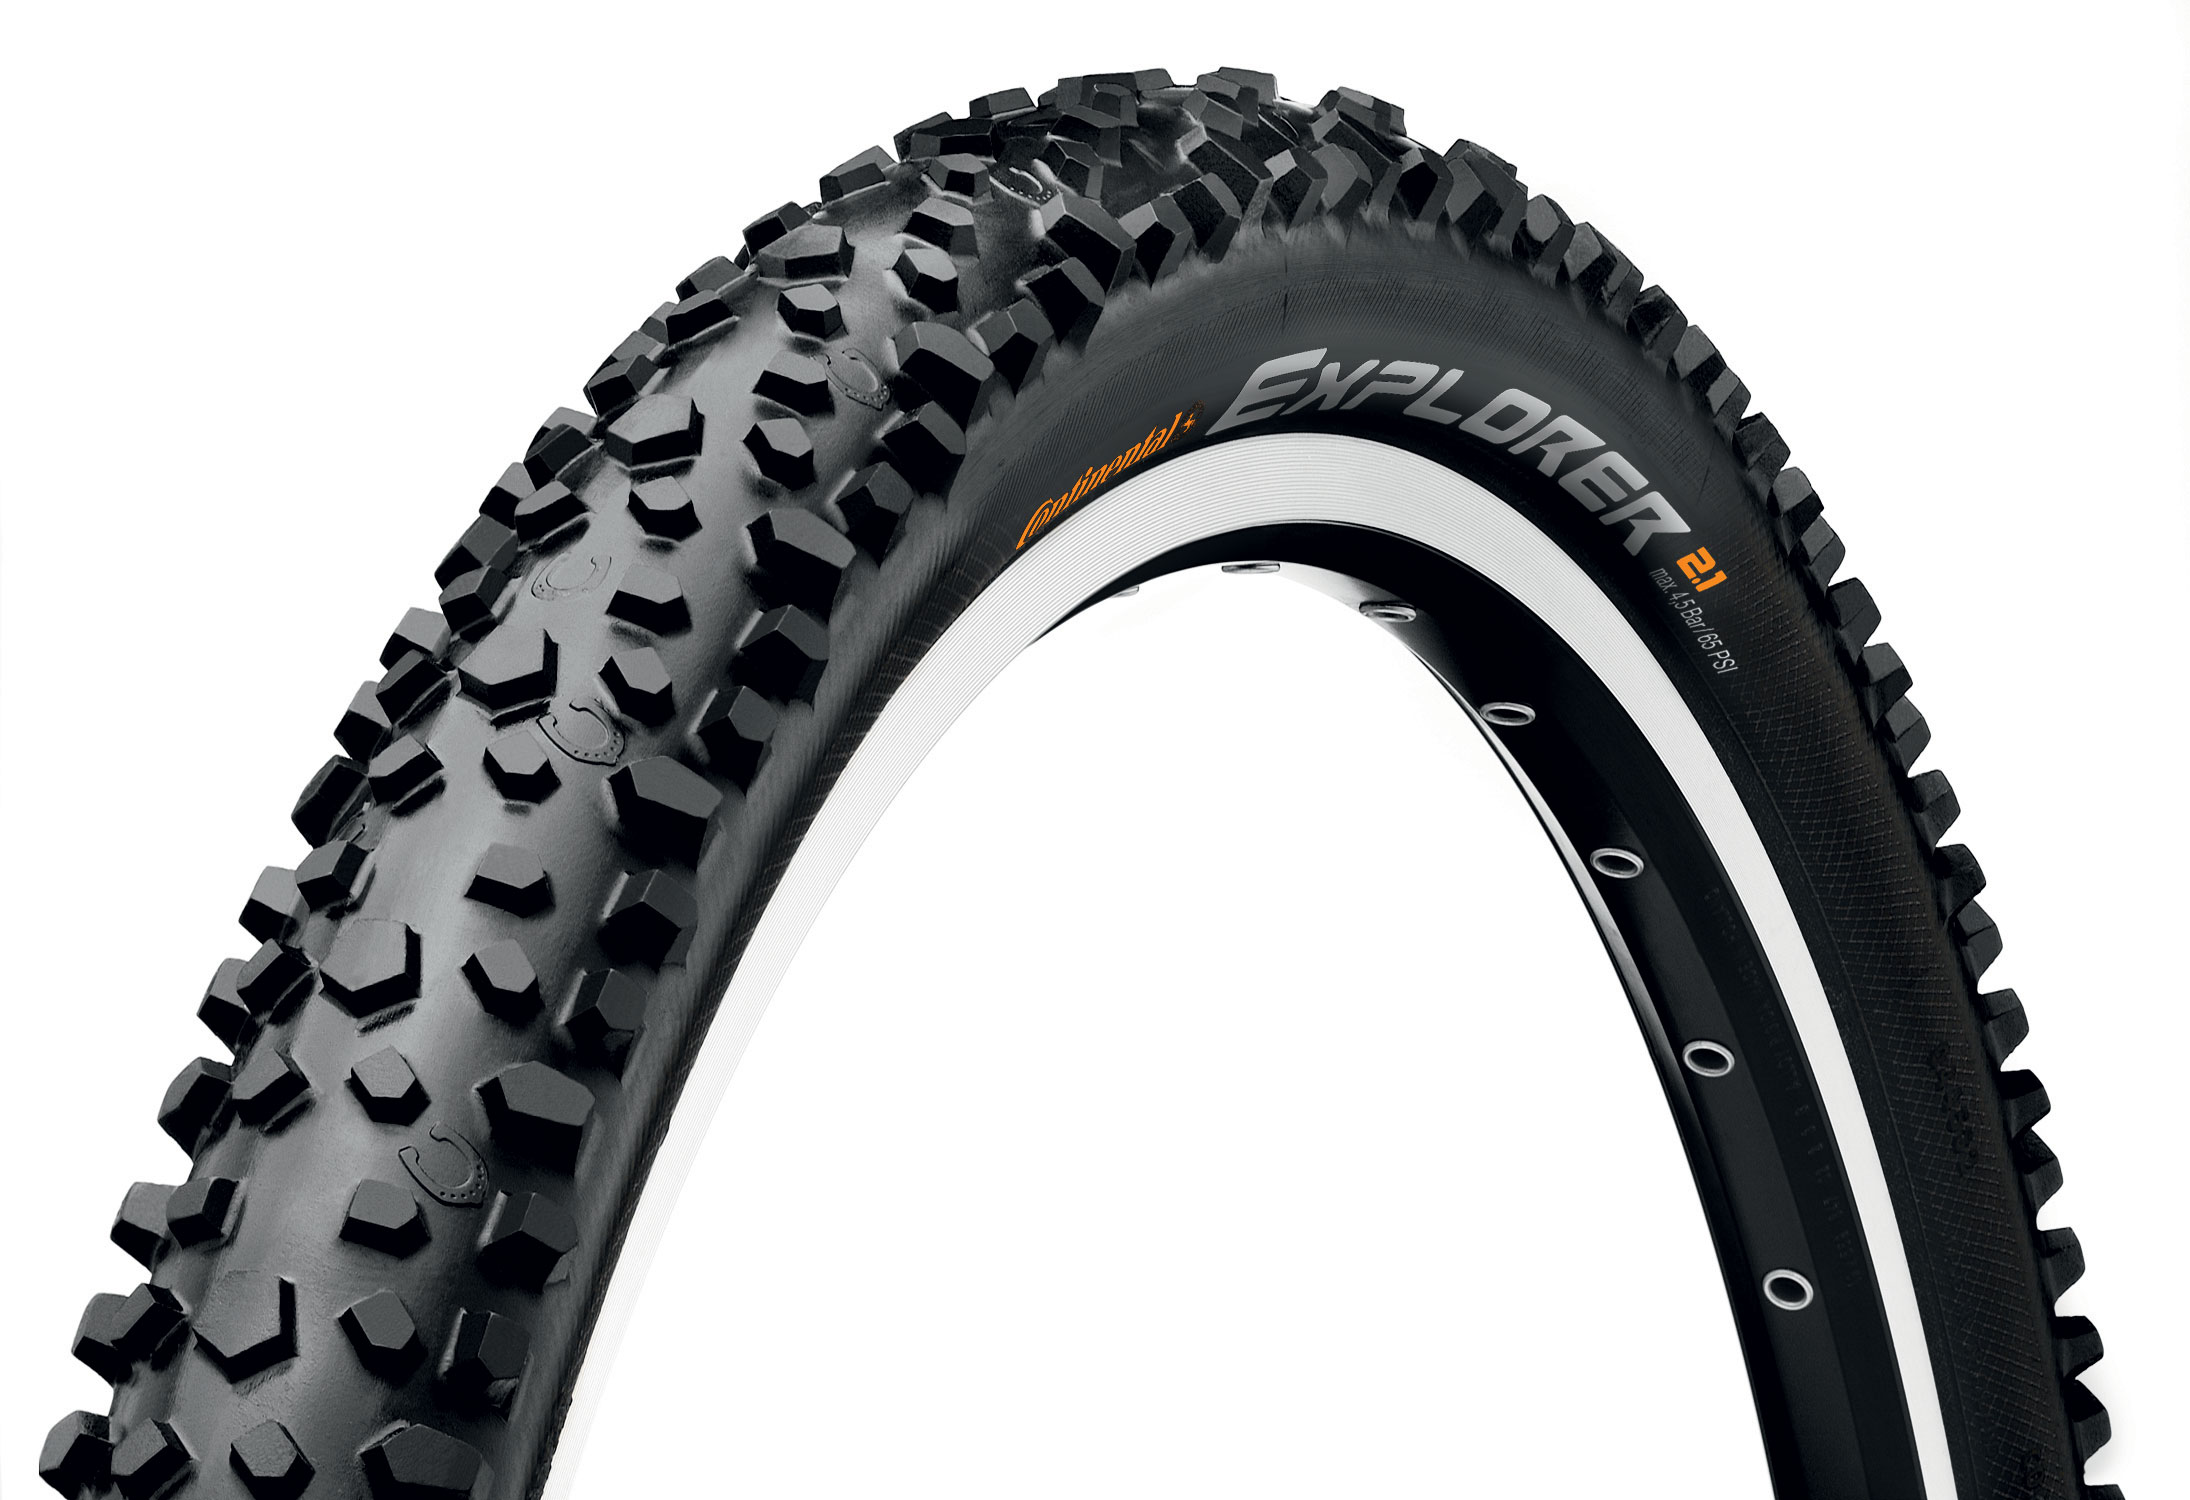 Continental Explorer Mountain Bike Tyre (16-24 Inch) | Tyres